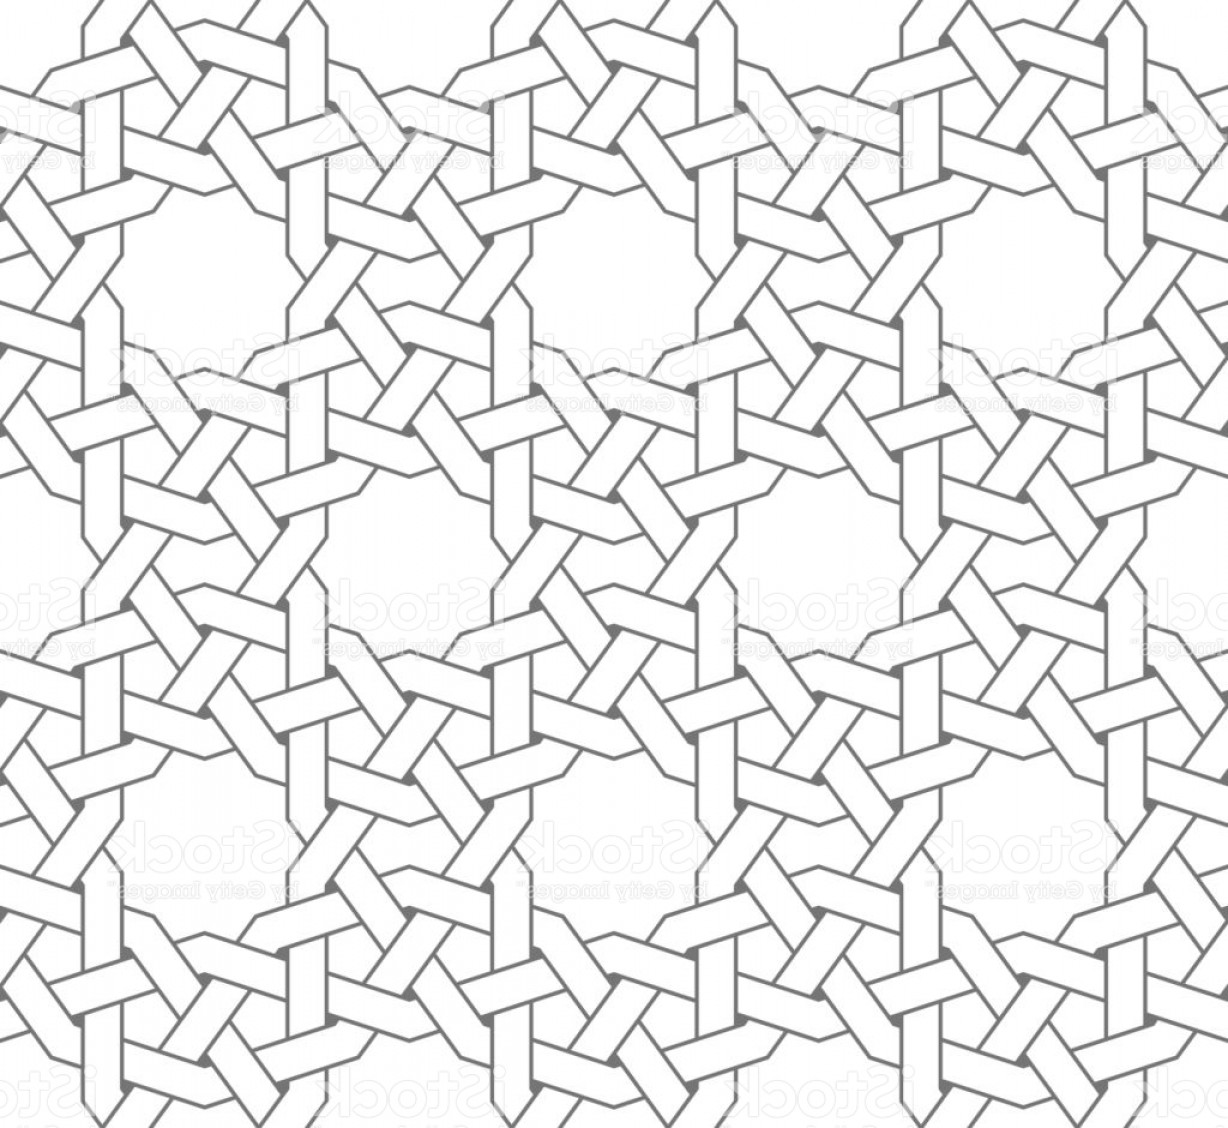 1228x1128 Islamic Vector Geometric Ornaments Based On Traditional Arabic Art